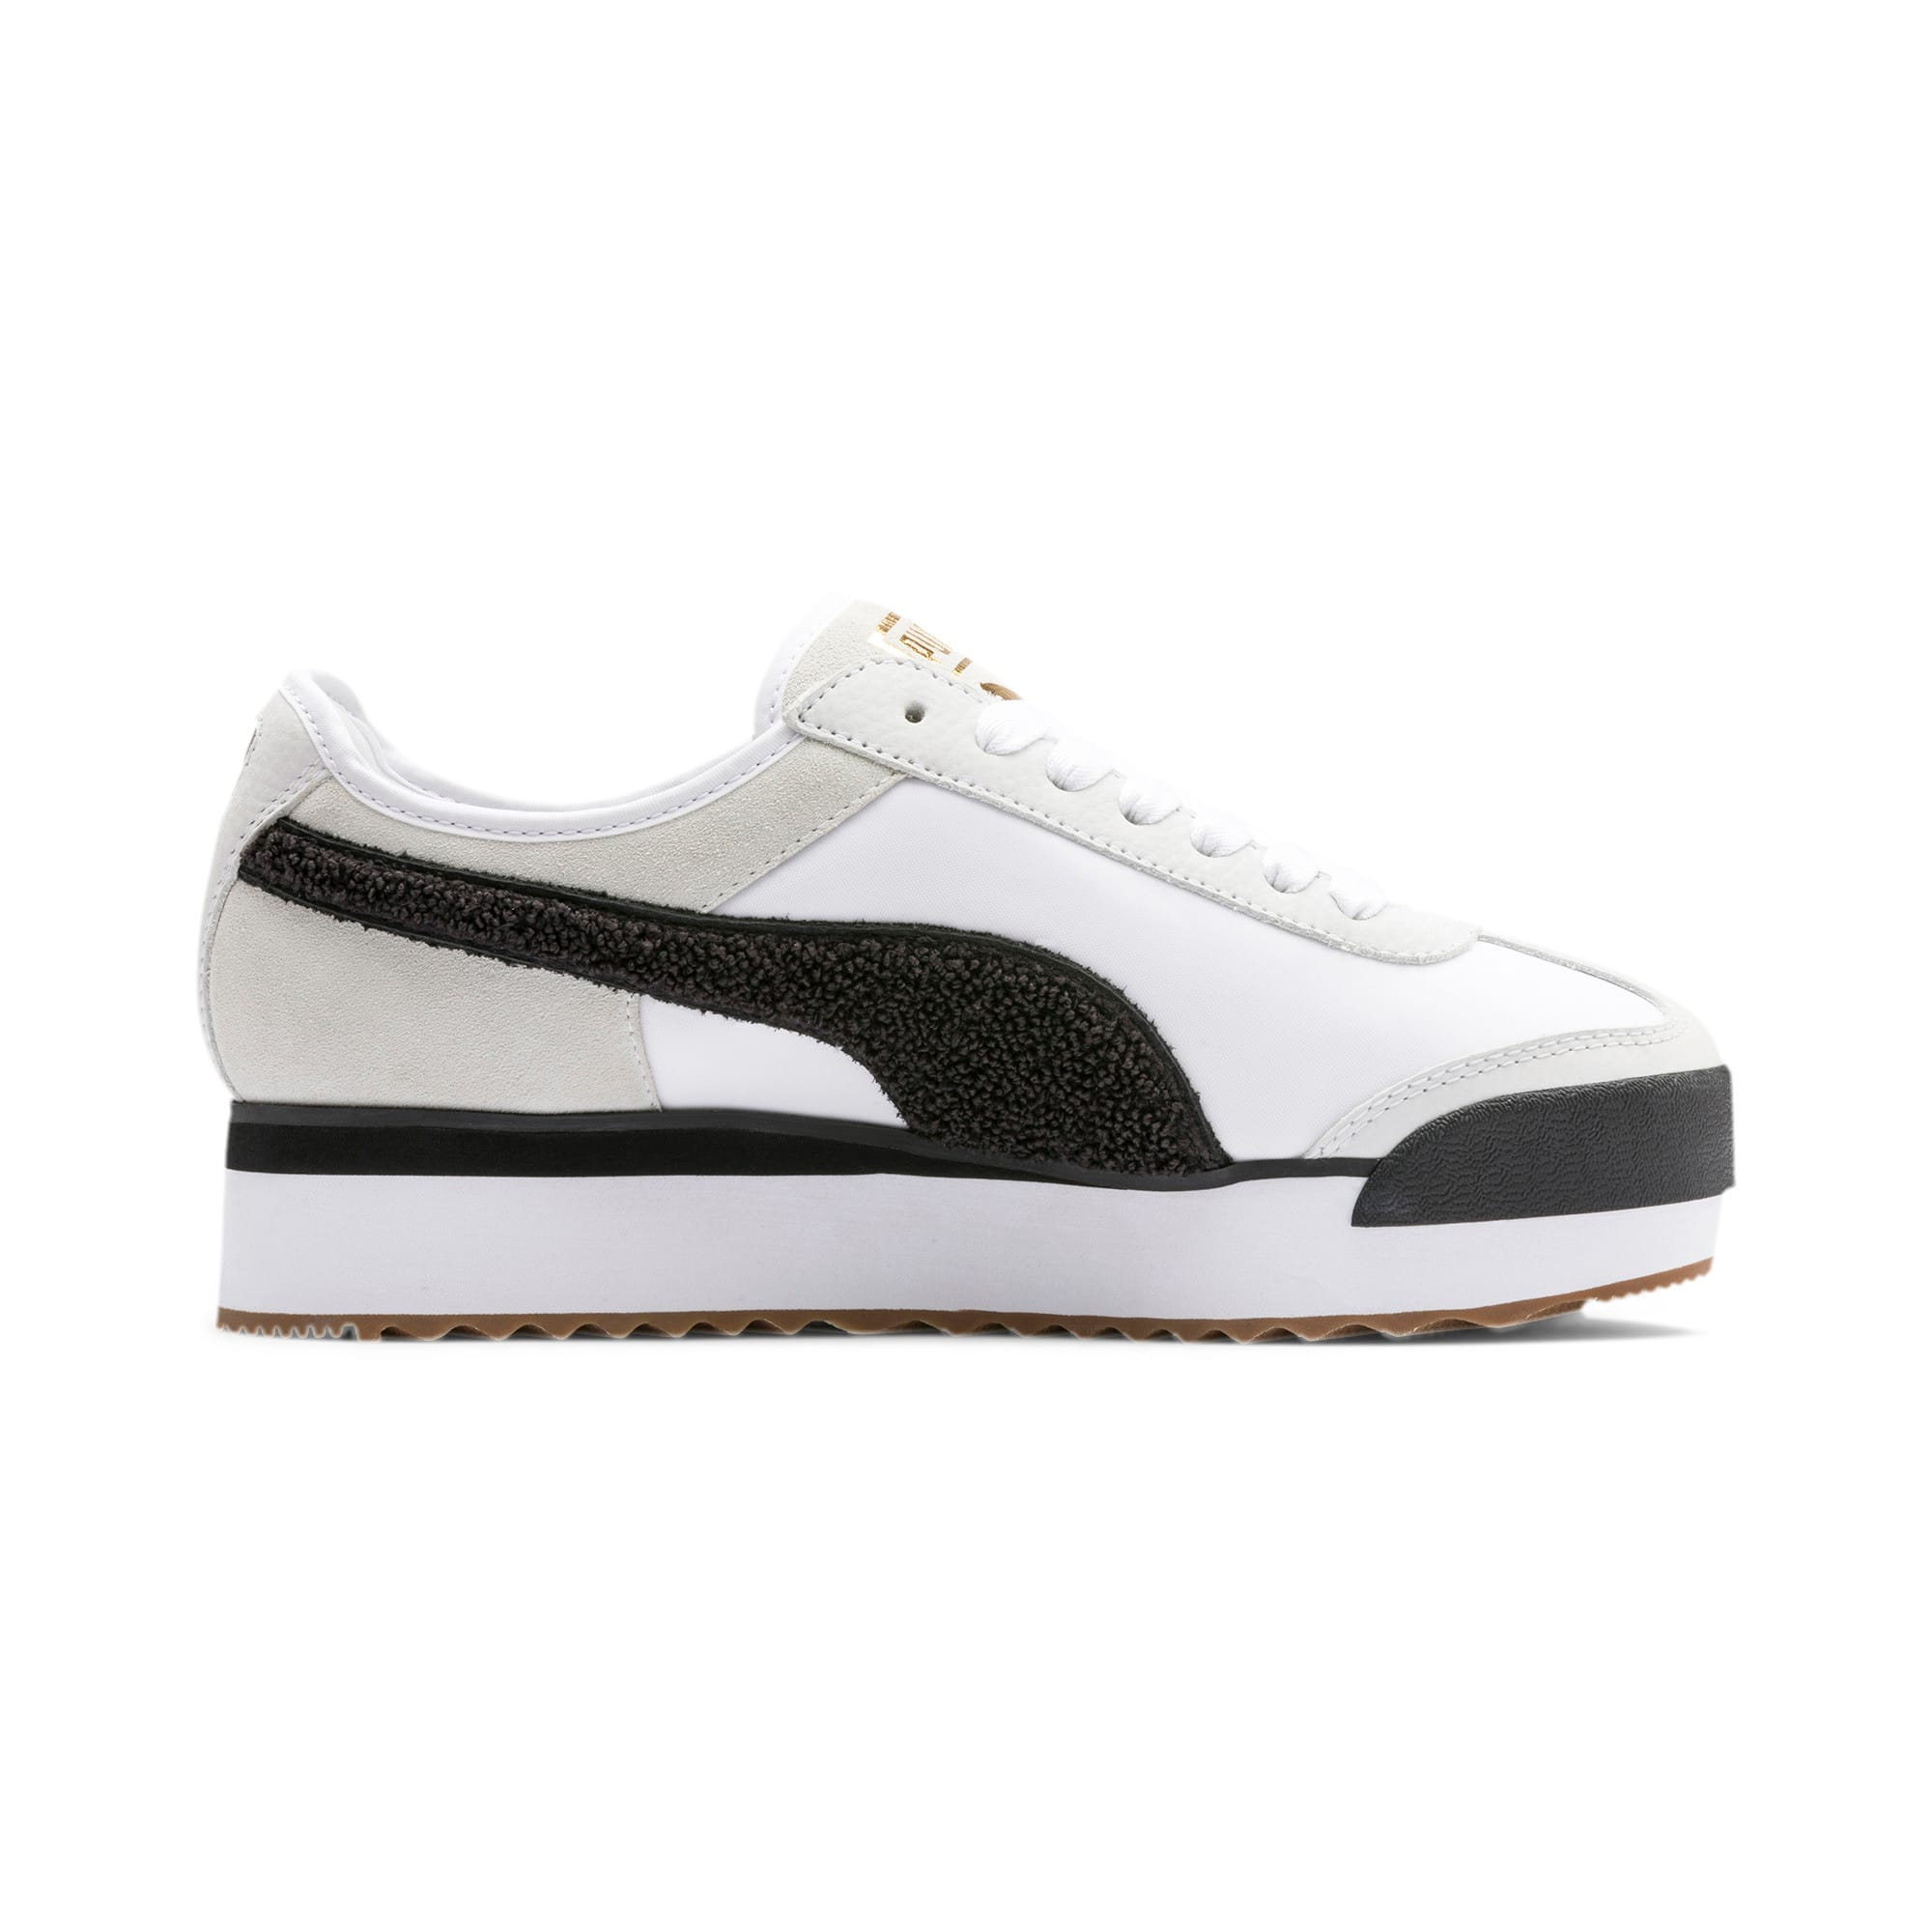 Thumbnail 7 of Roma Amor Heritage Women's Sneakers, Puma White-Puma Black, medium